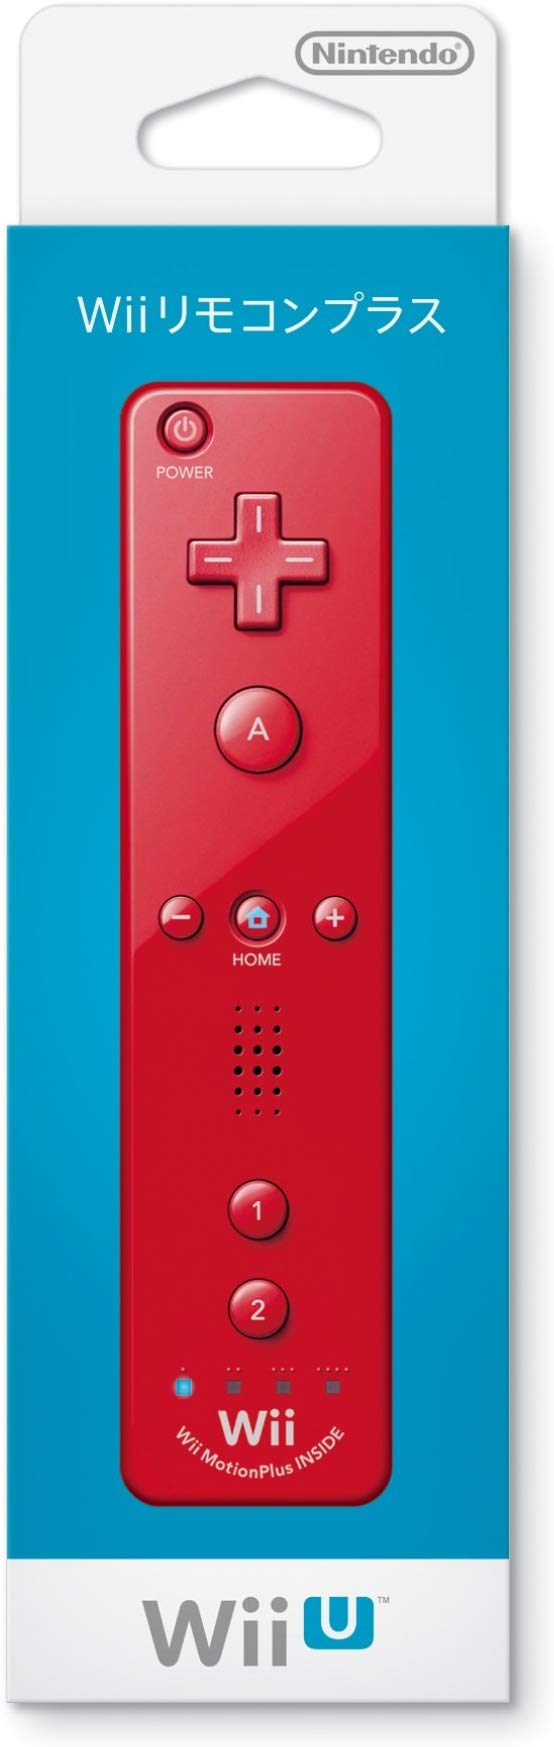 Nintendo Wii - Remote Plus  (Red)